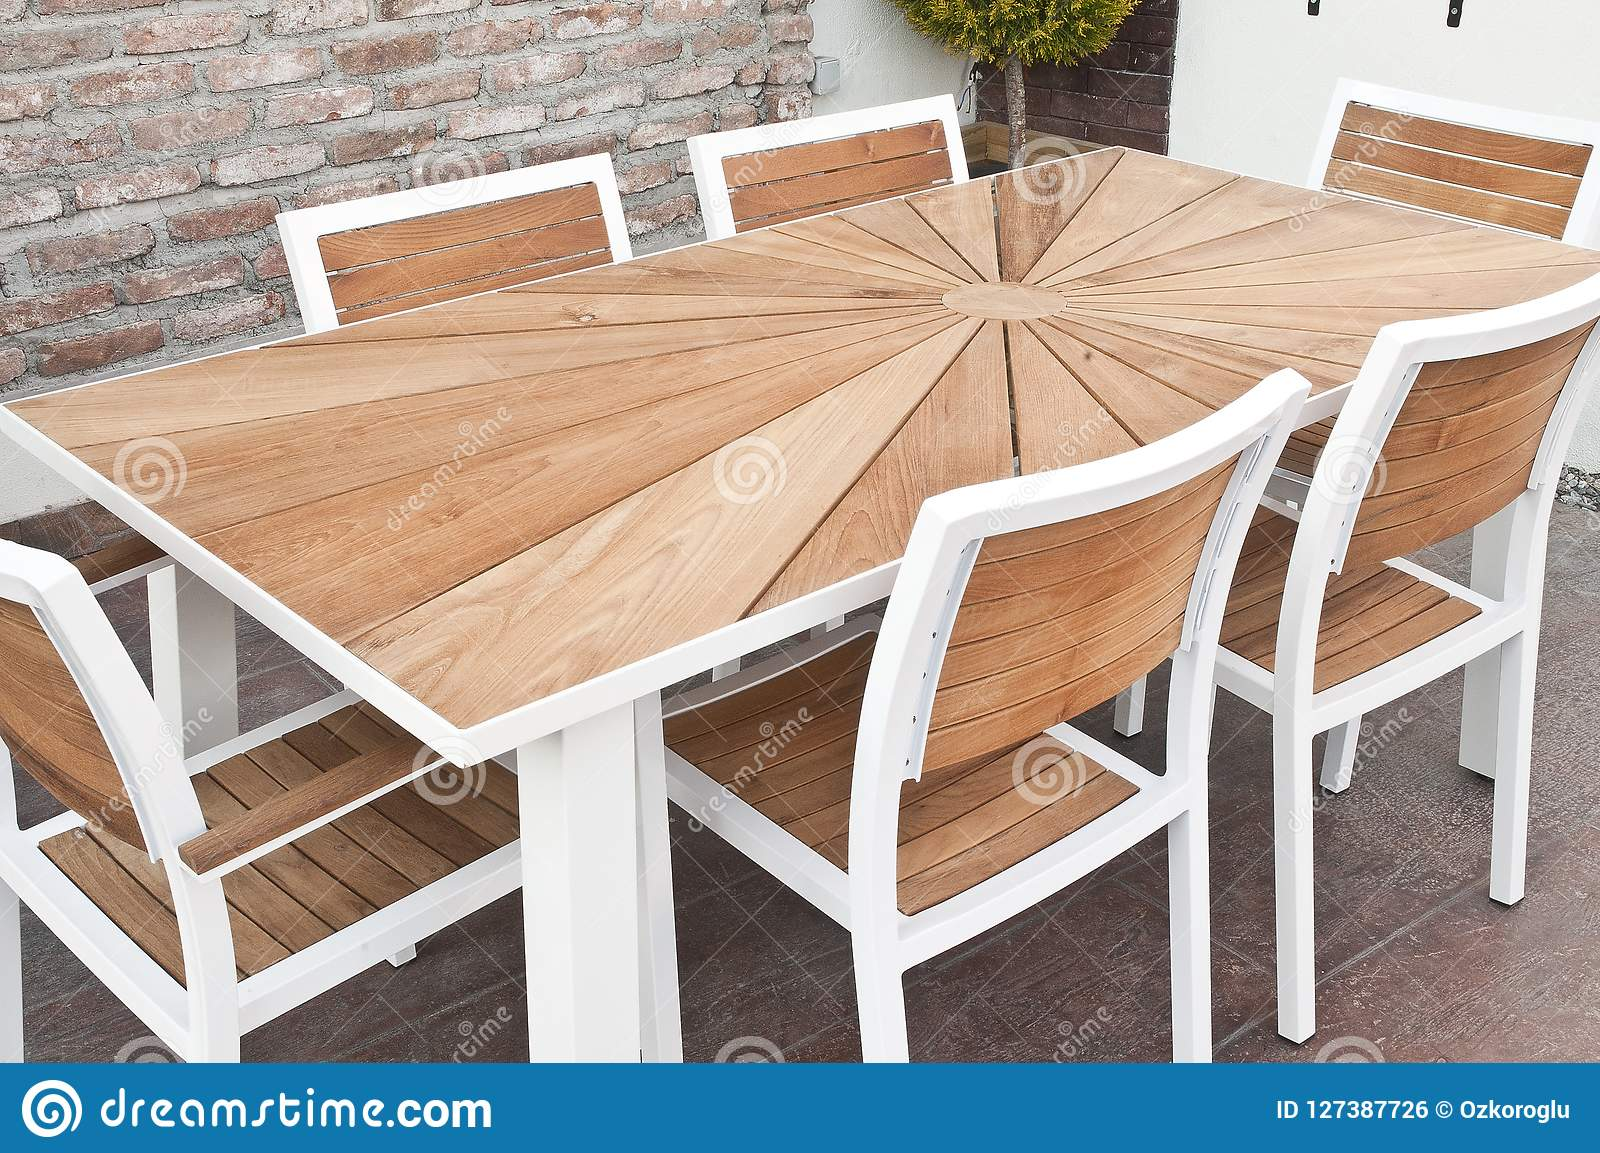 https www dreamstime com metal wood outdoor patio furniture dining table white chairs front stone wall image127387726